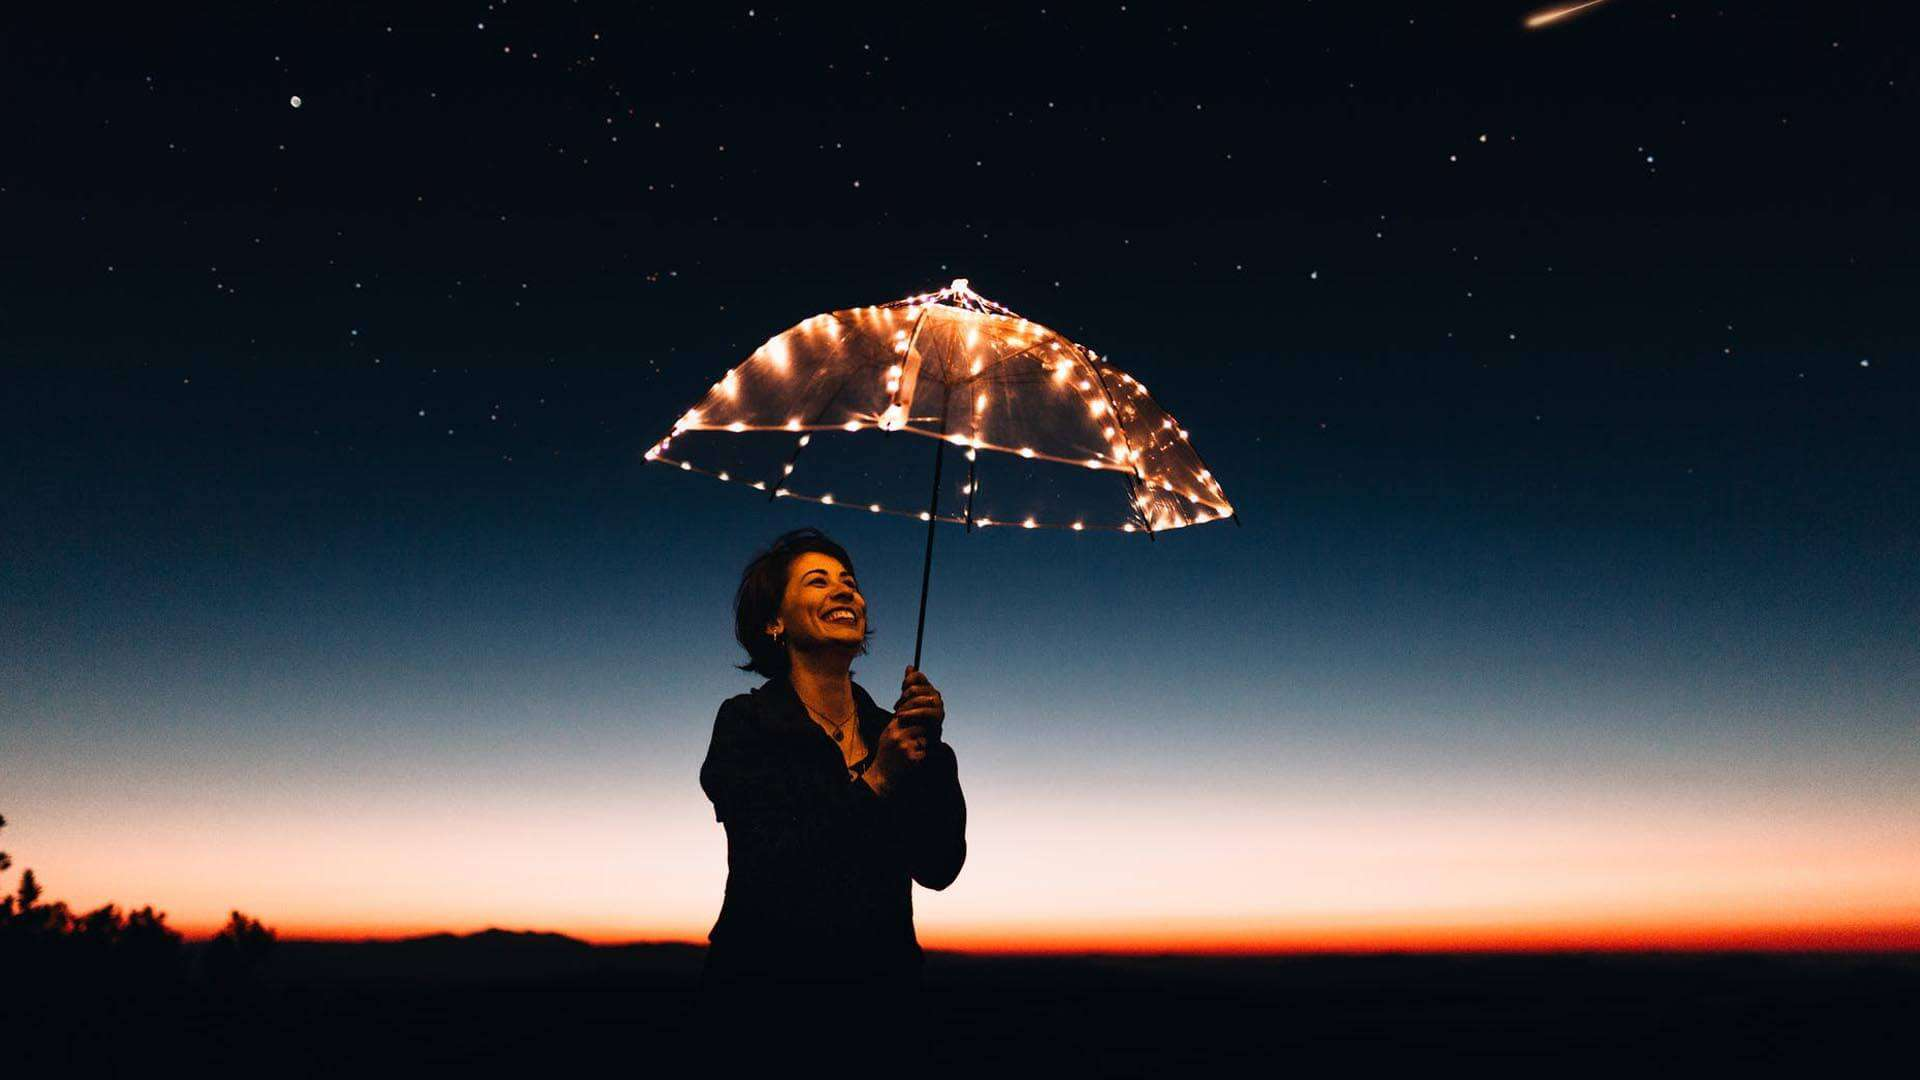 Achieve the best possible outcomes - Lady with Umbrella